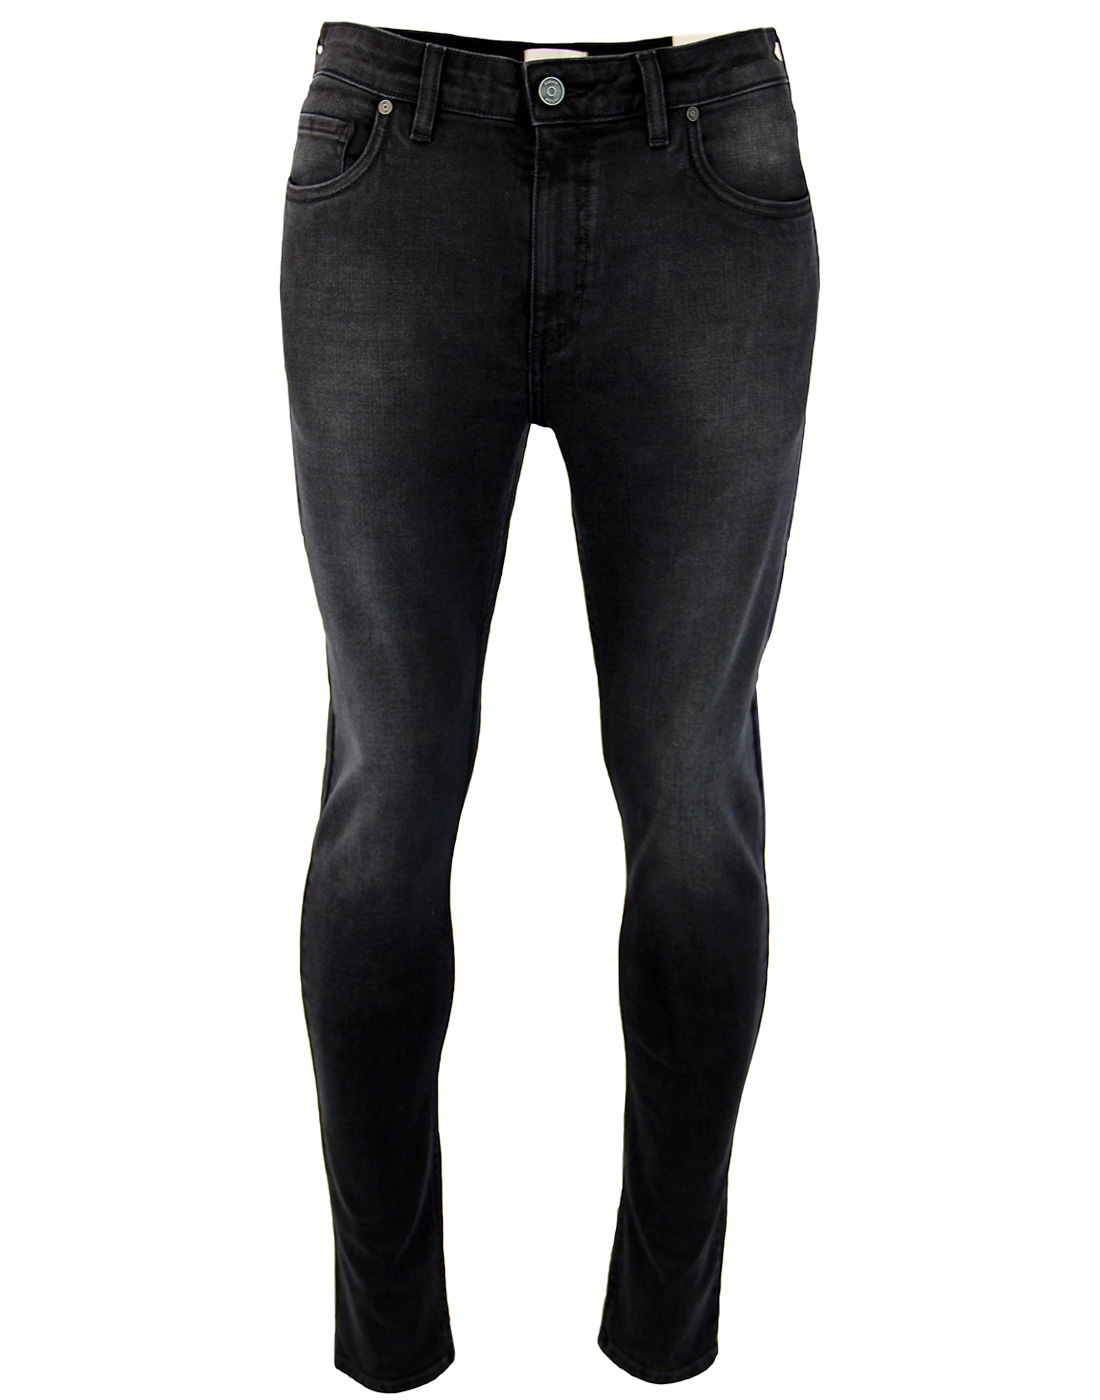 Drake FARAH Indie Soft Stretch Slim Jeans Charcoal